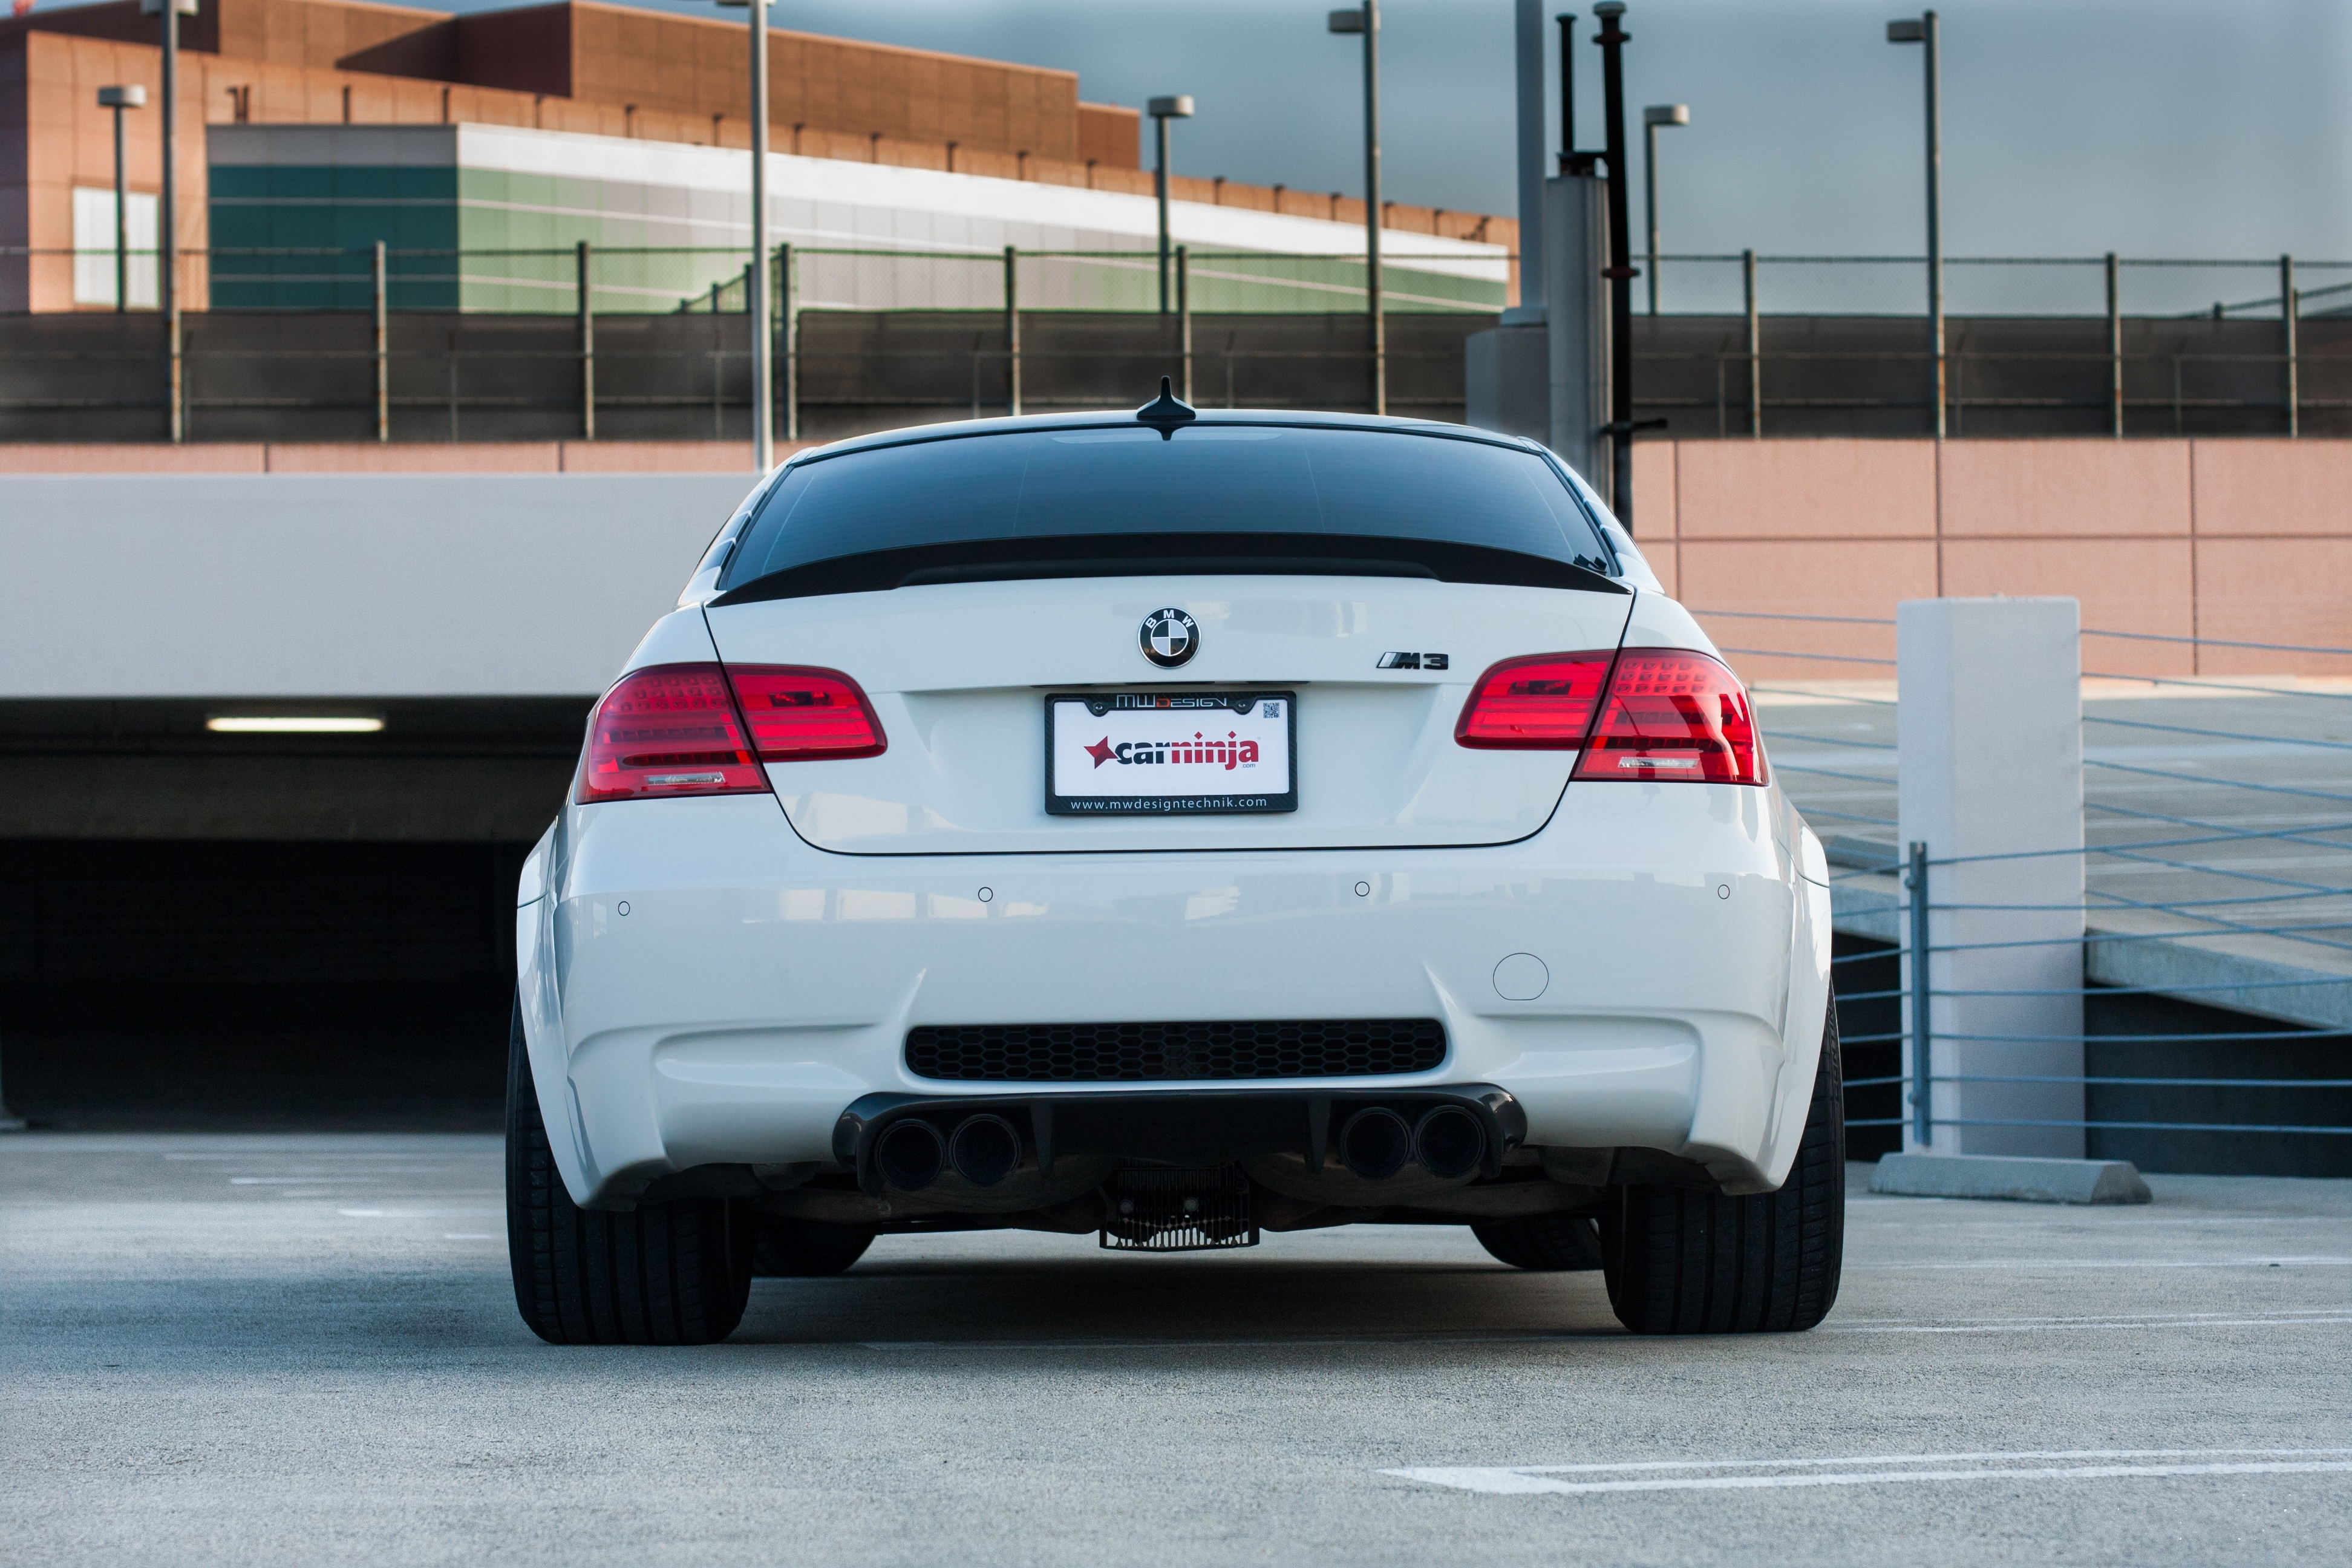 126854 download wallpaper Cars, Bmw, M3, E92, Auto, Back View, Rear View screensavers and pictures for free